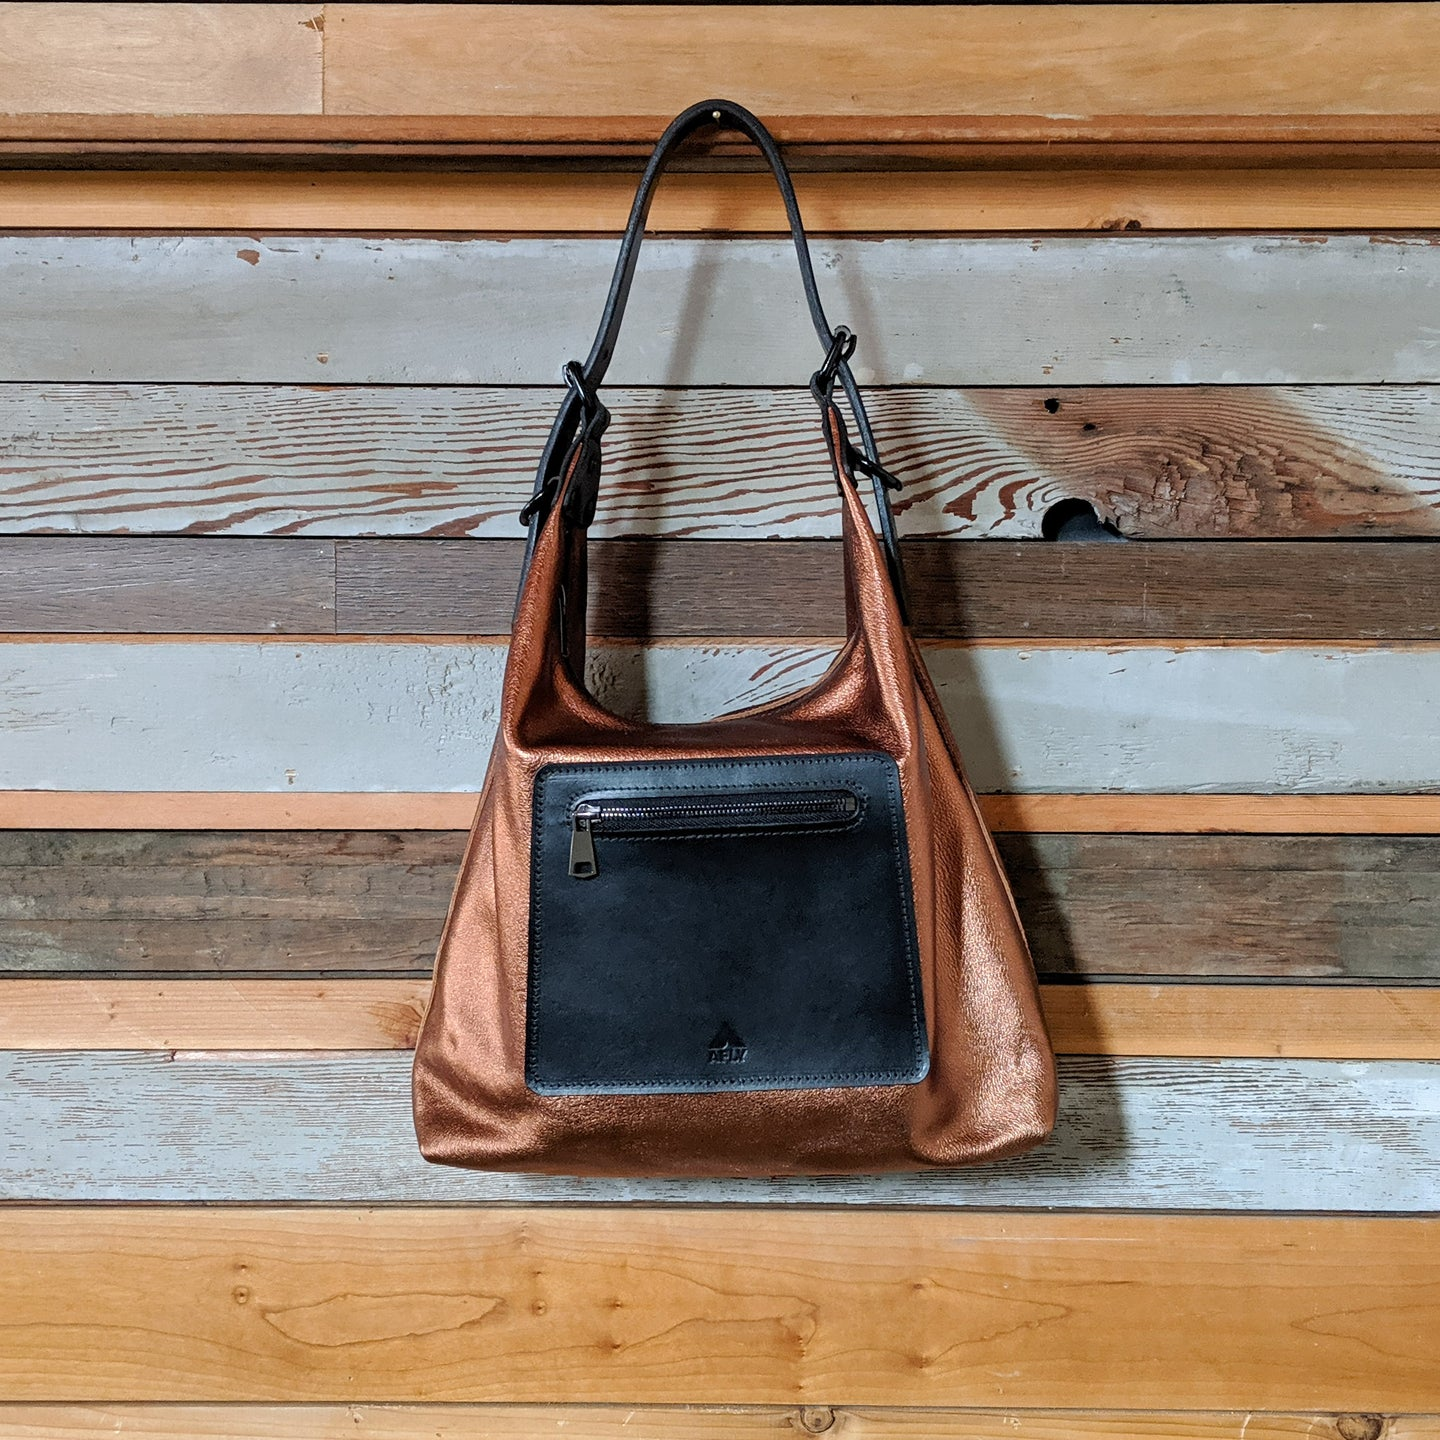 Jinx Handmade Leather Hobo